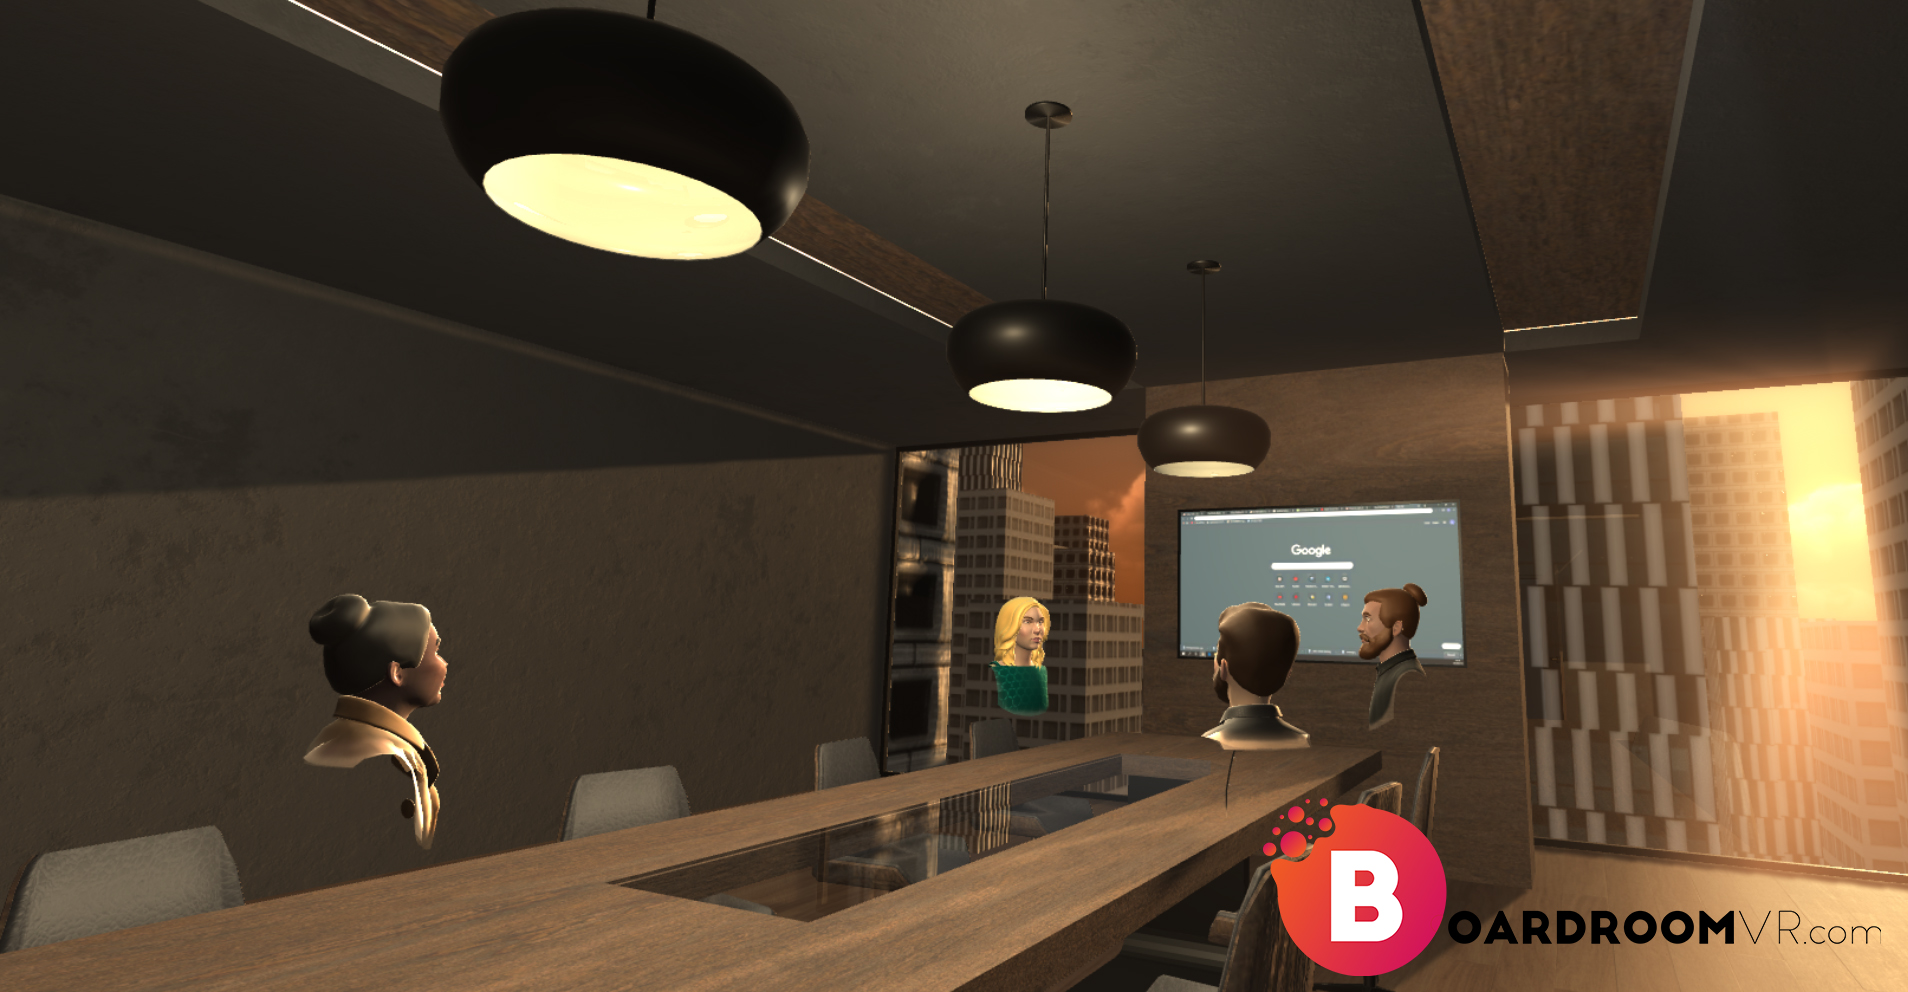 Boardroom Virtual Reality